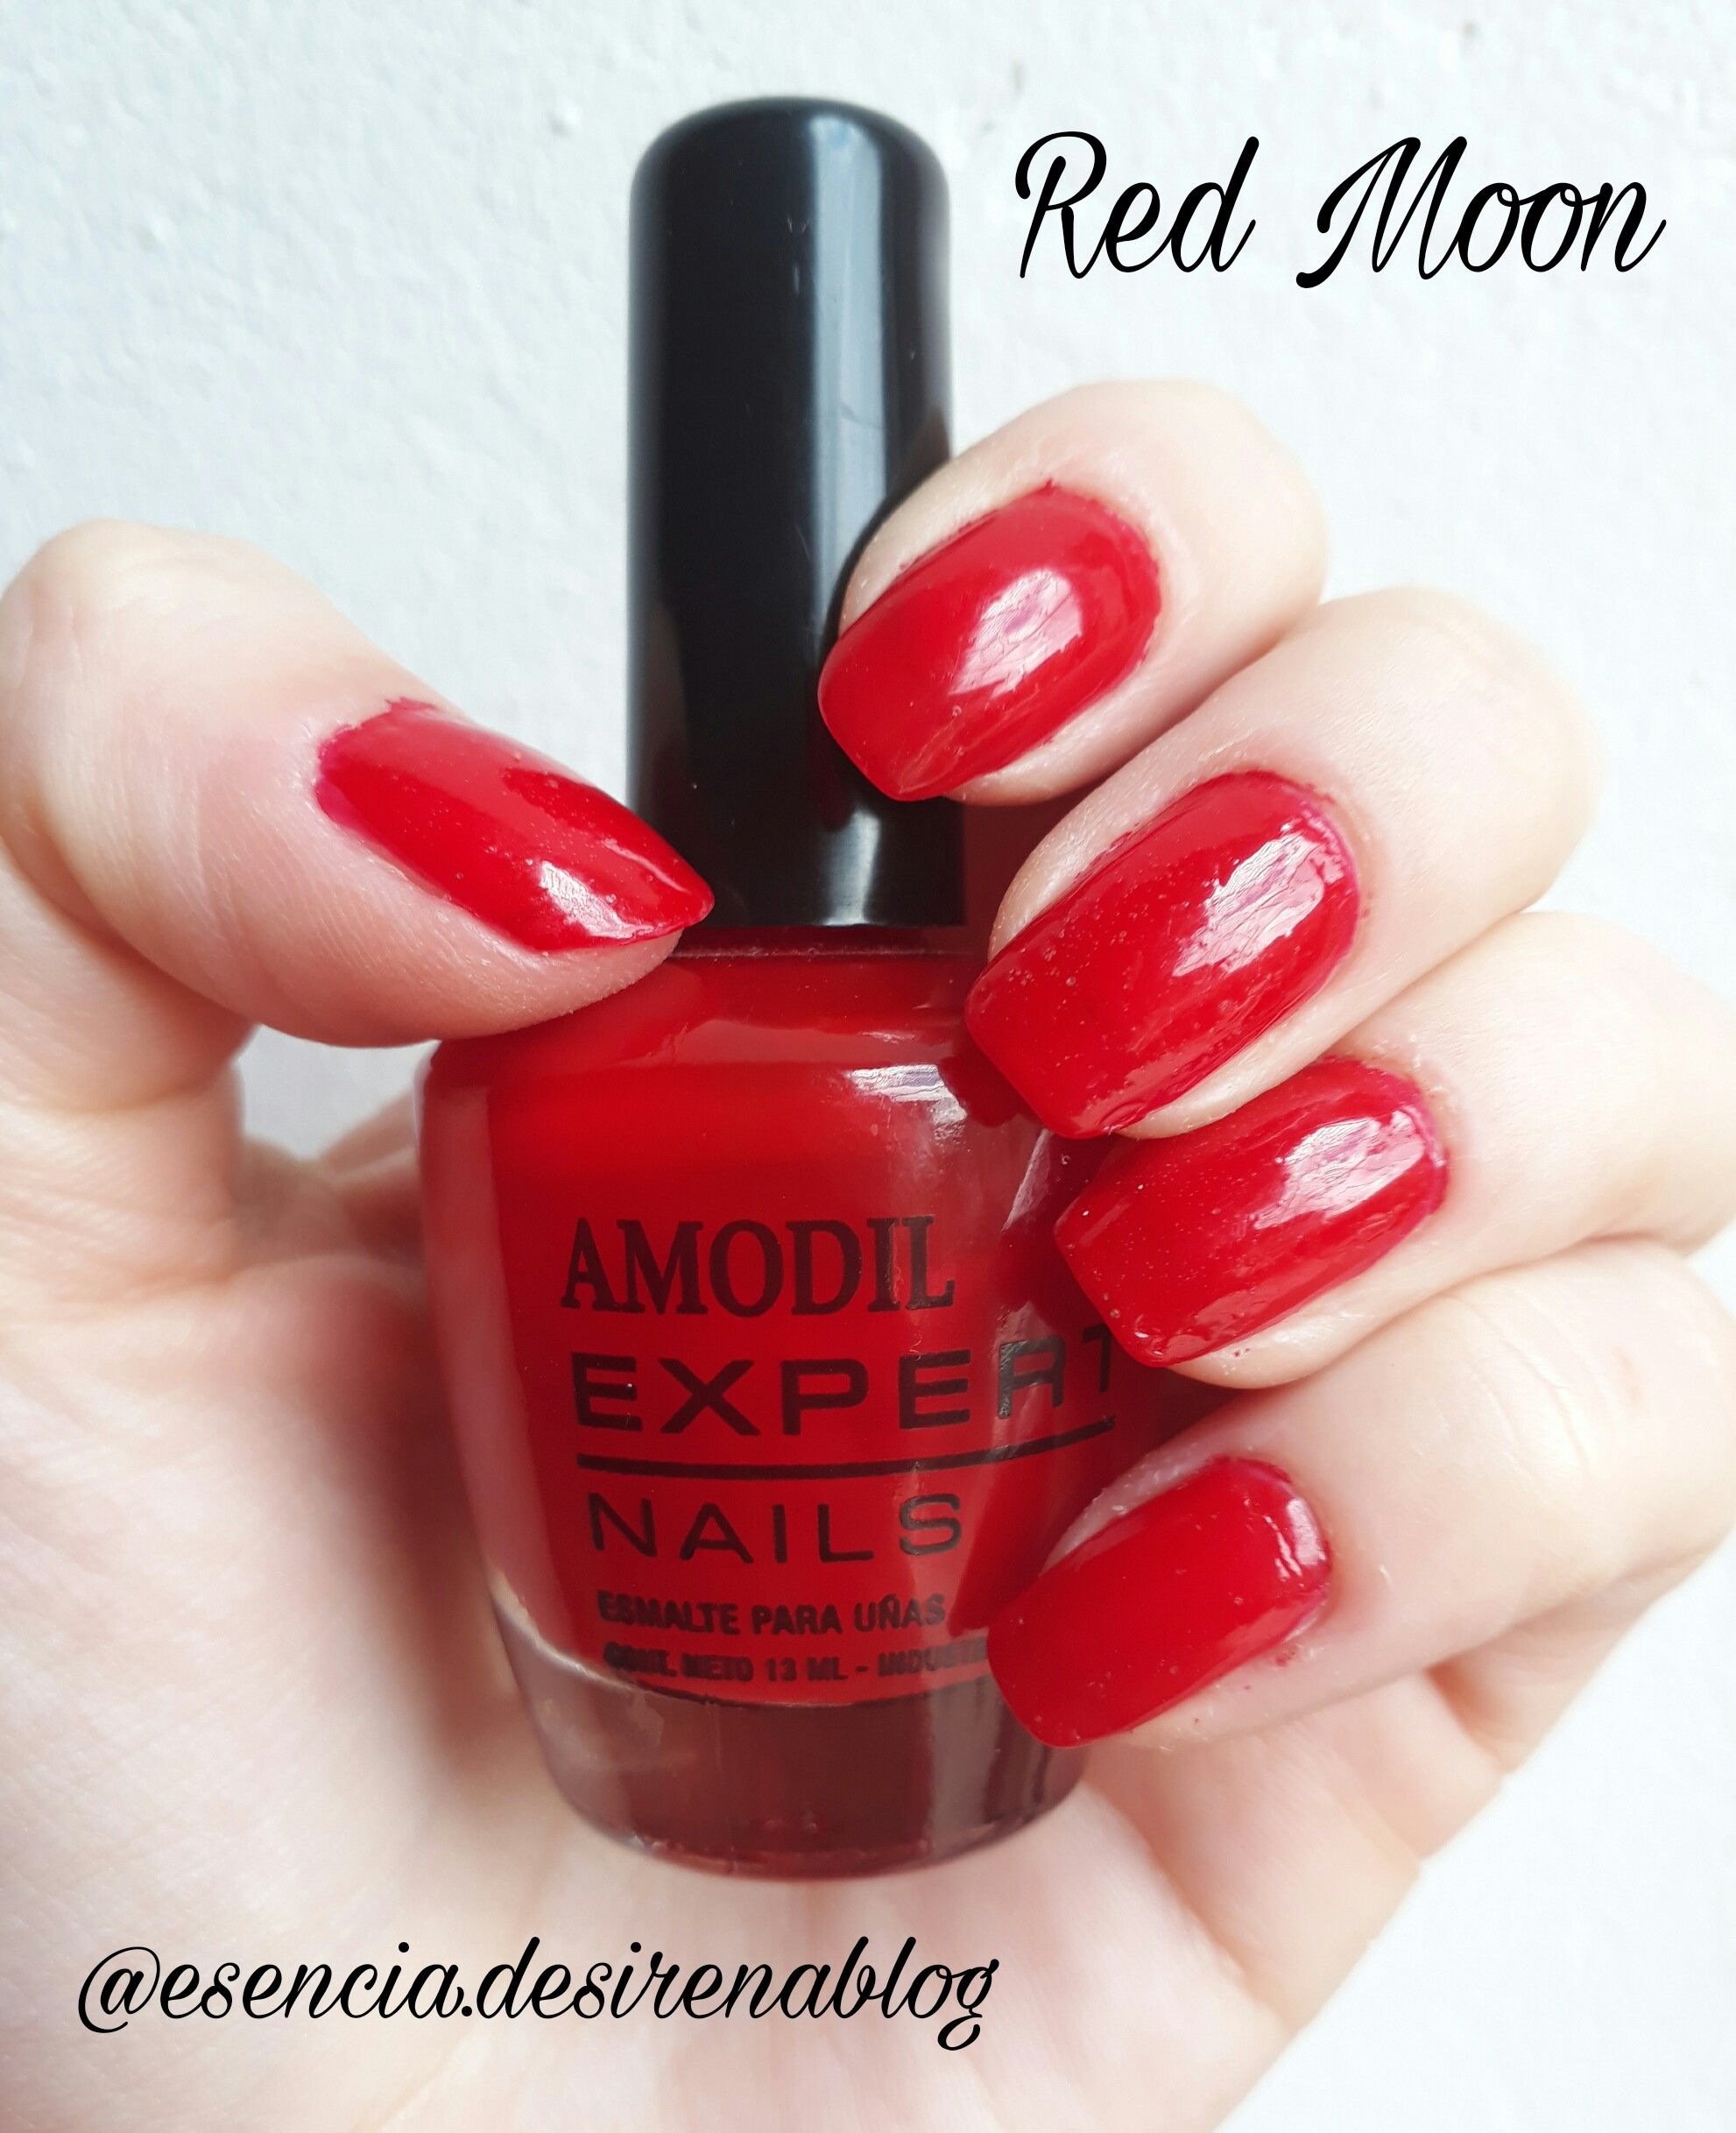 Red Moon Amodil Expert Nails | Amodil - Esmaltes | Pinterest | Red moon